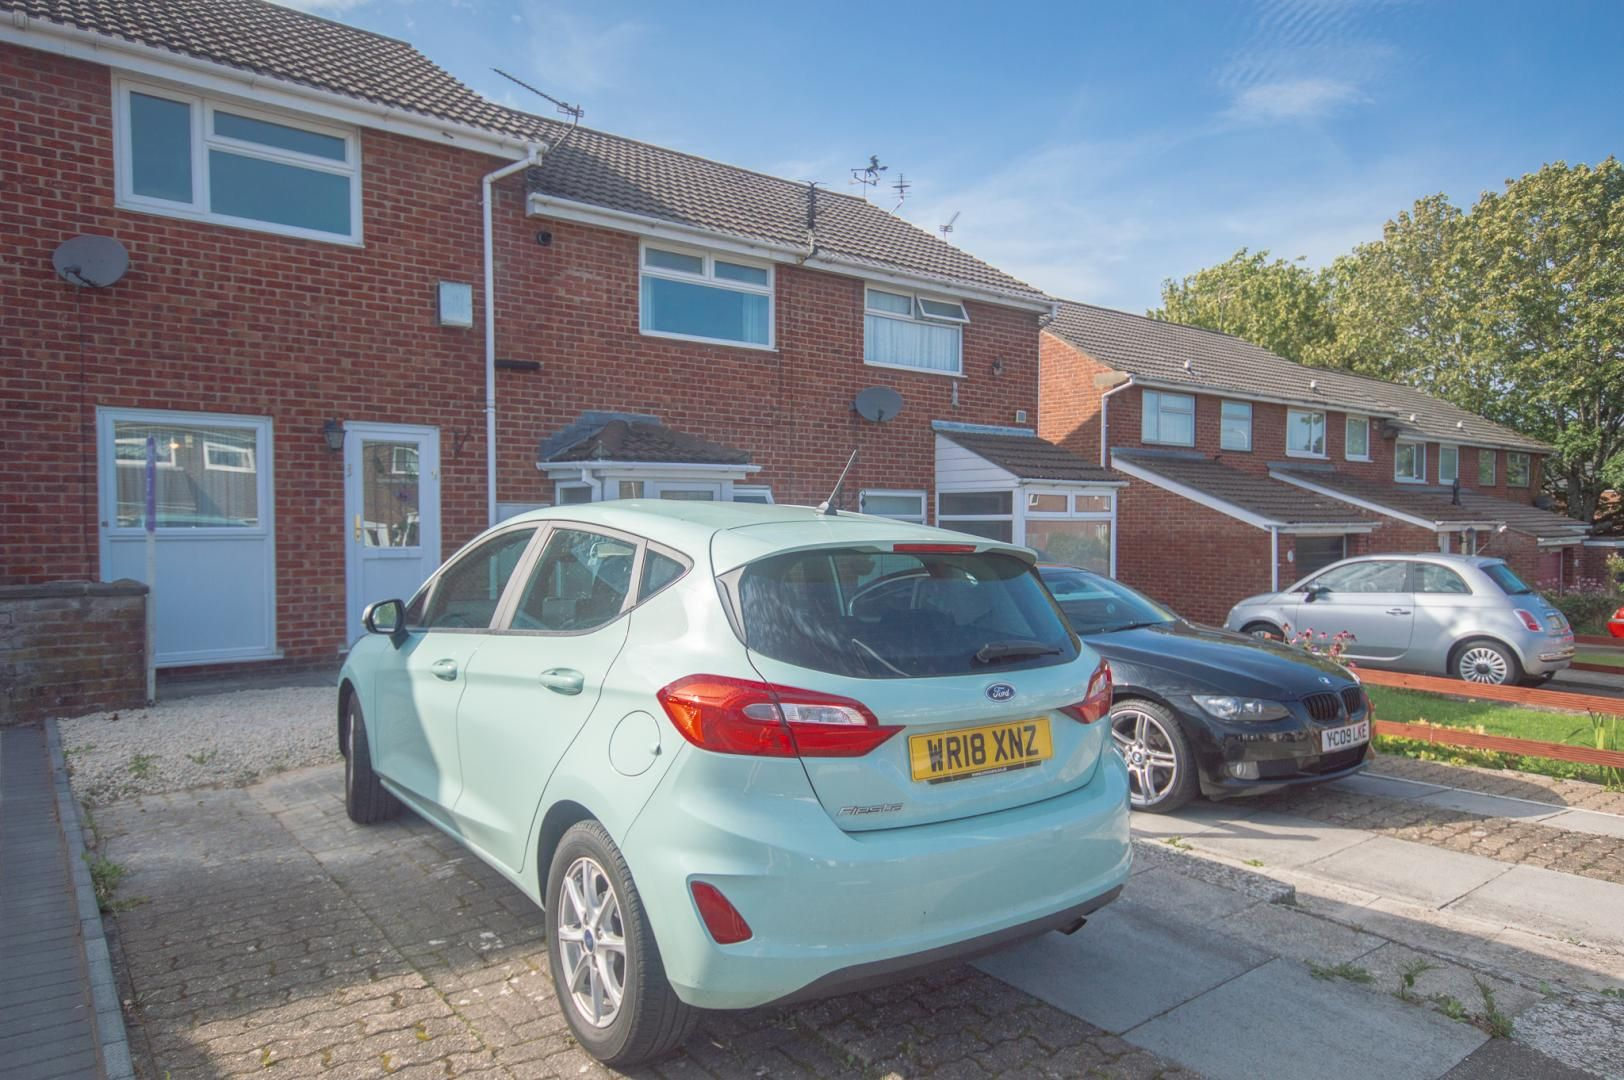 2 bed house to rent in Buxton Close - Property Image 1